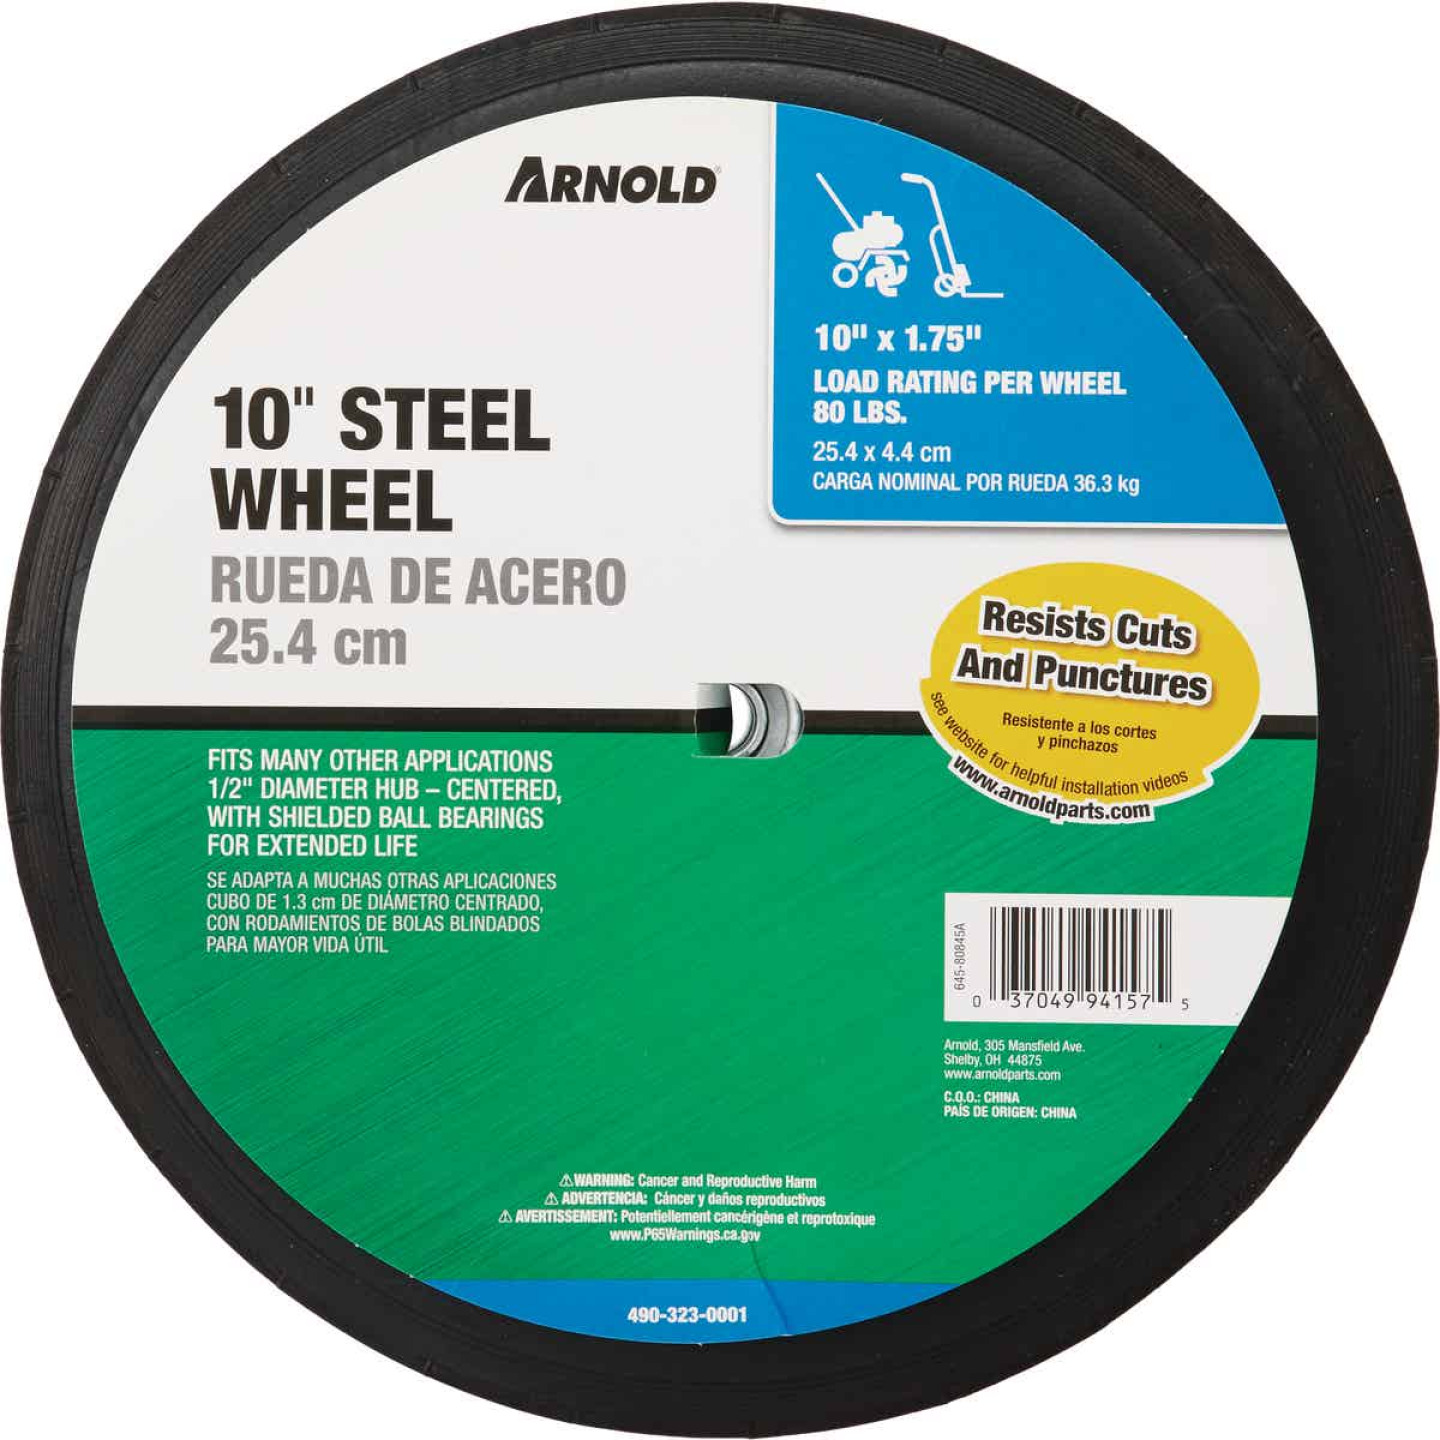 Arnold 10x2.75 Narrow Hub Wheel Image 2